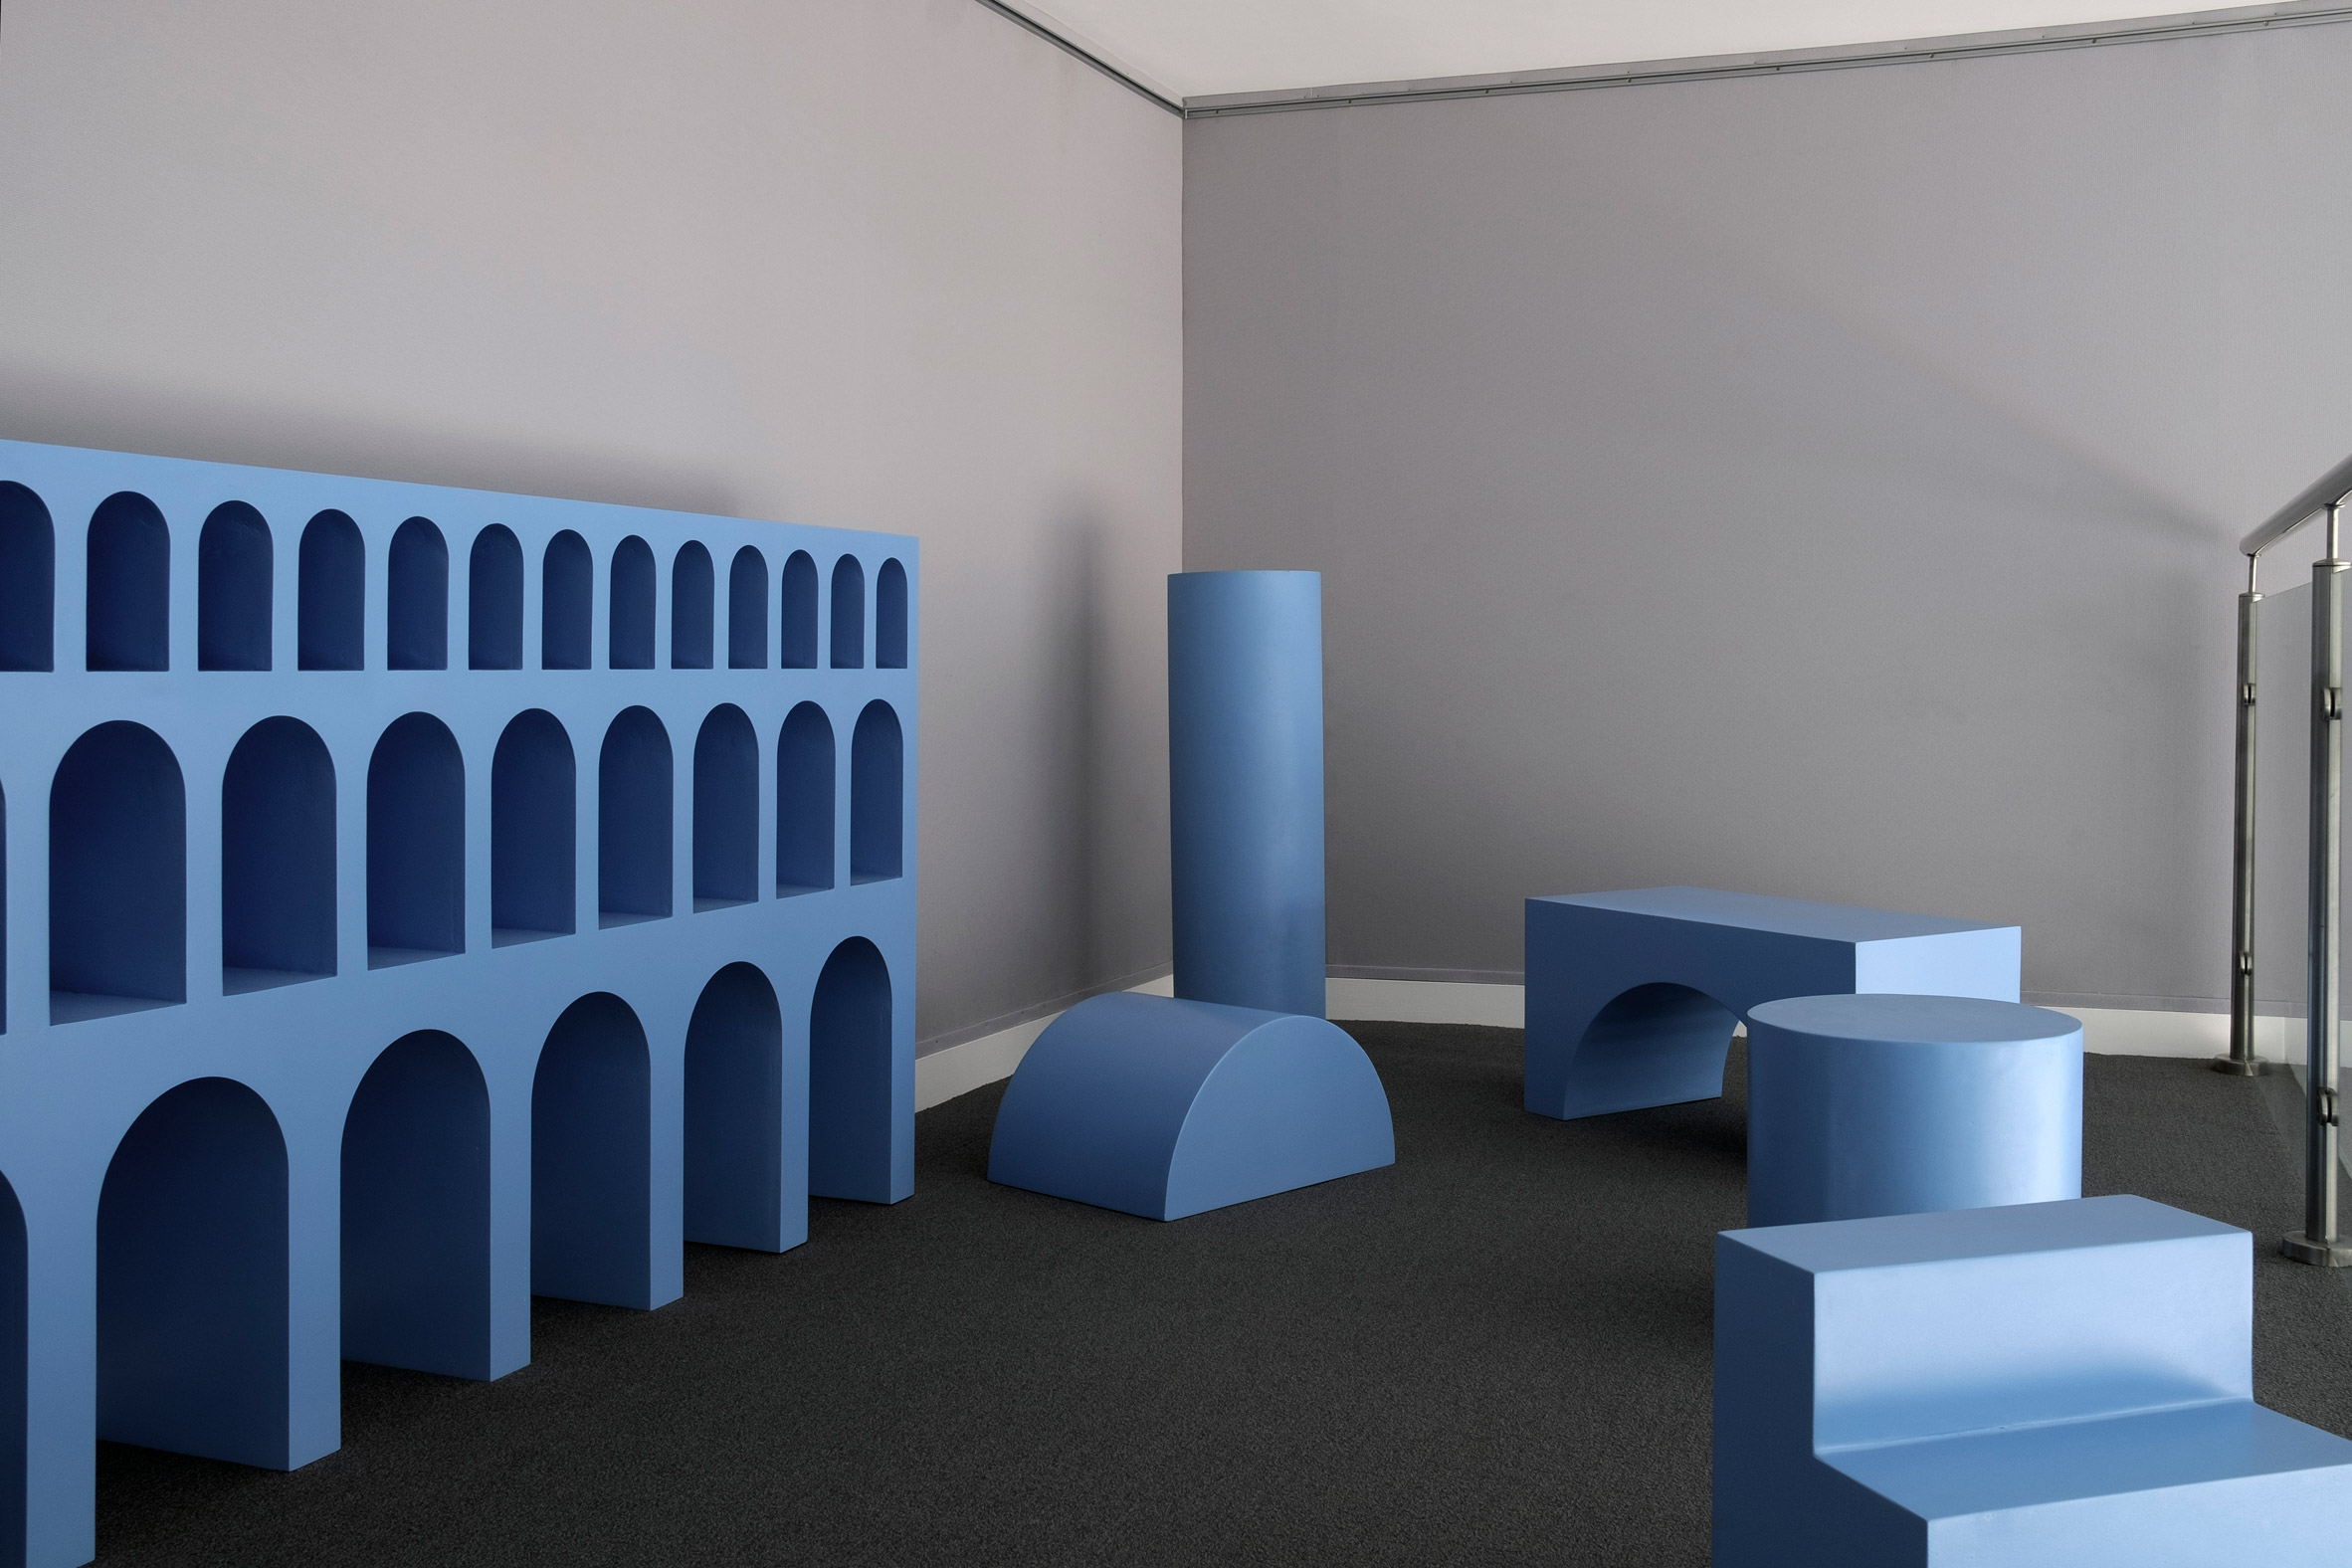 Matteo Pacella and Philippine Hamen design blue classical furniture